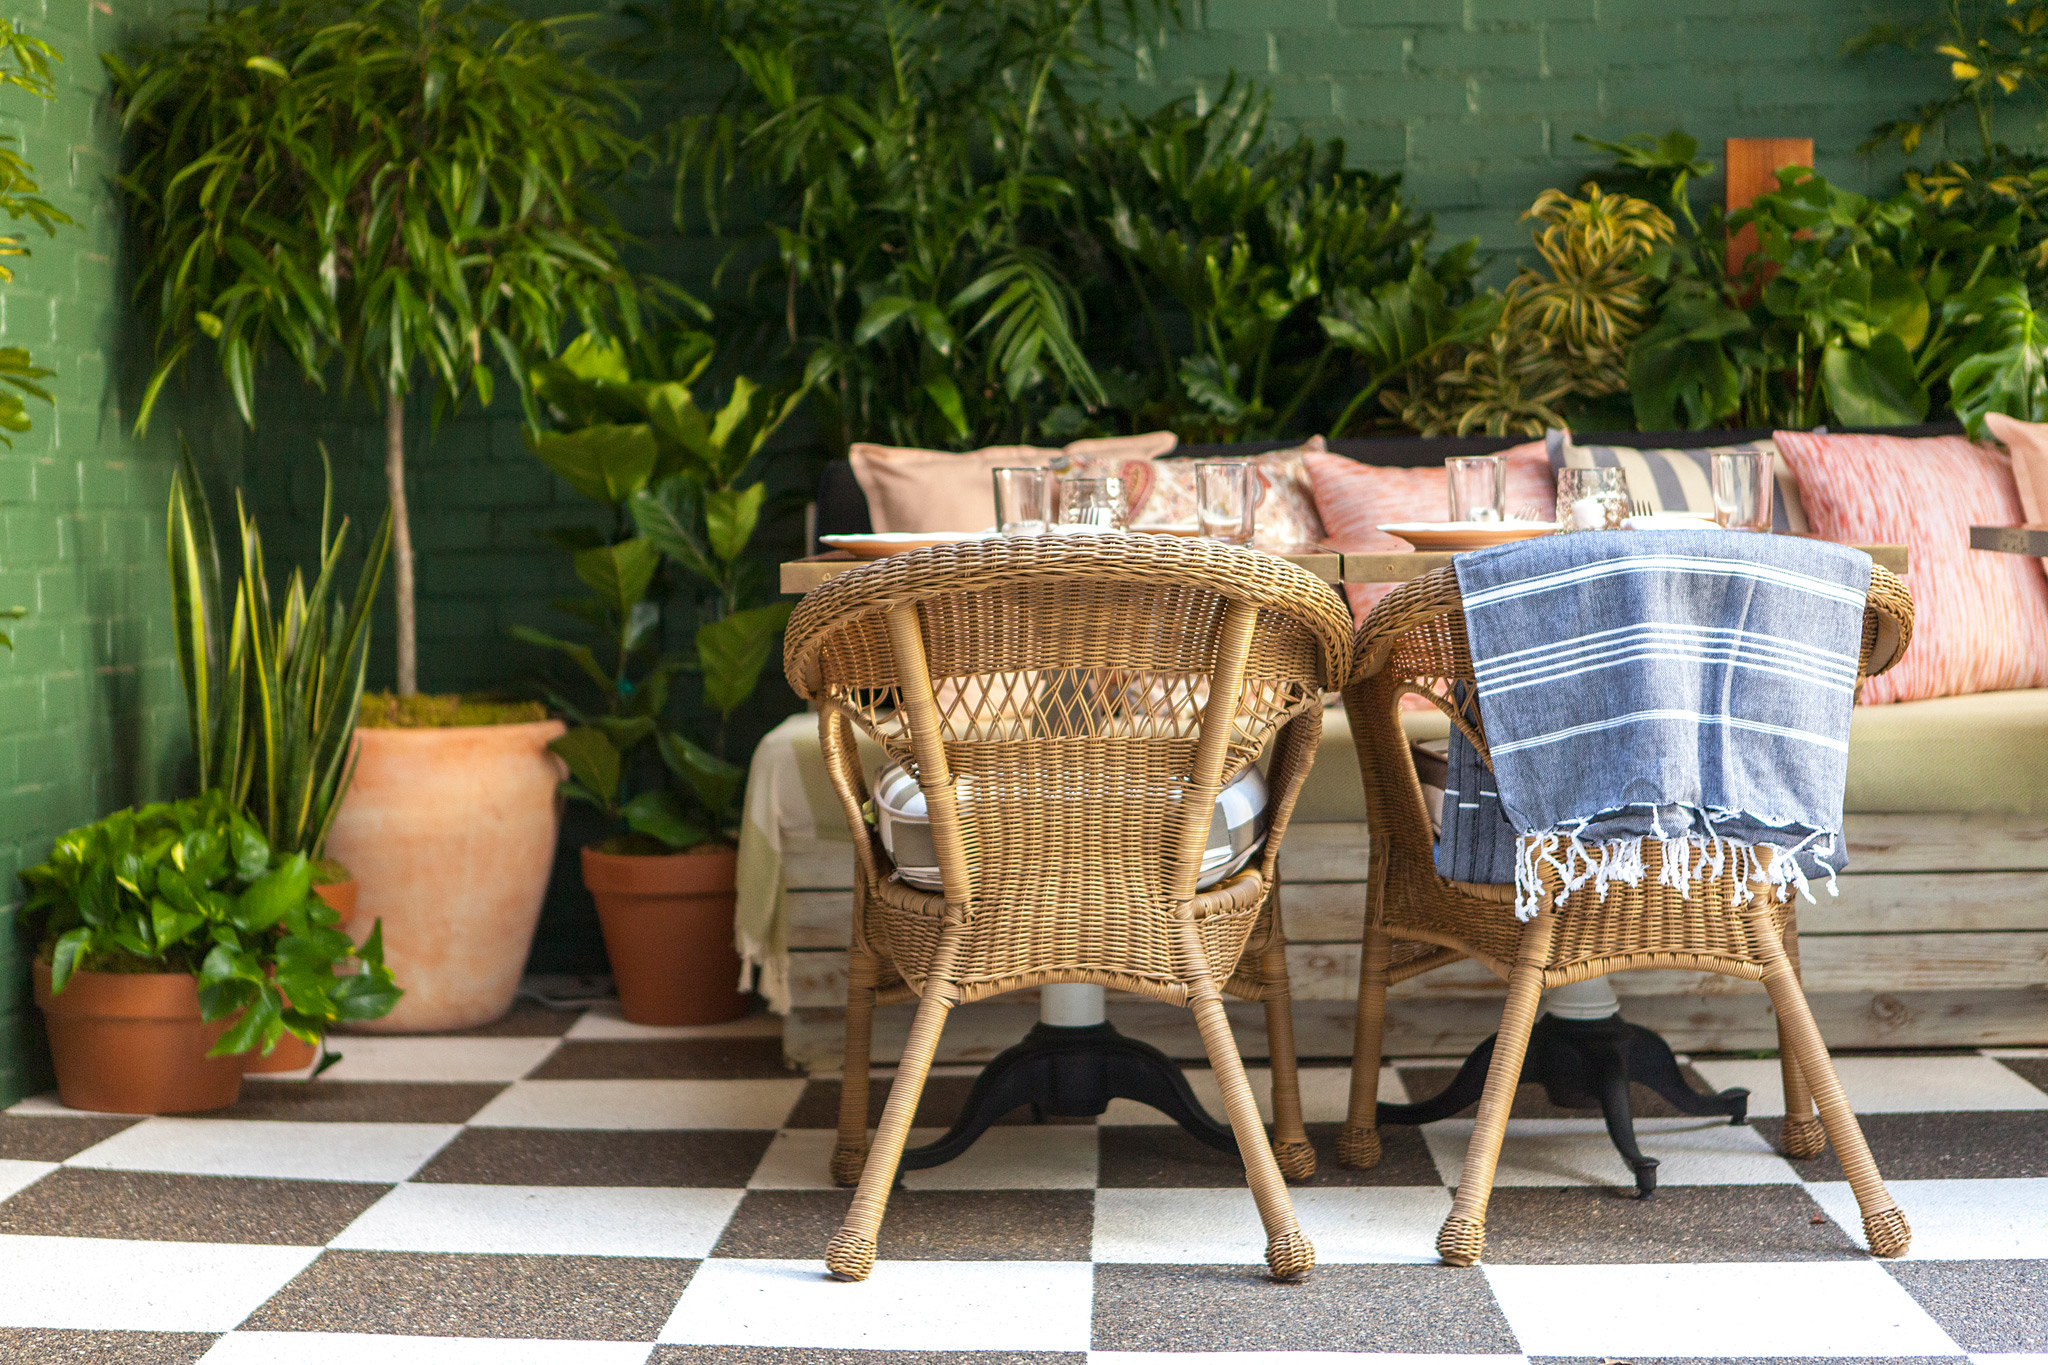 corner of courtyard at Mardi  - checkered floor, earth-tone blankets and patterned pillows on bench seating at wood tables with wicker chairs opposite bench. Many green plants surrounding.